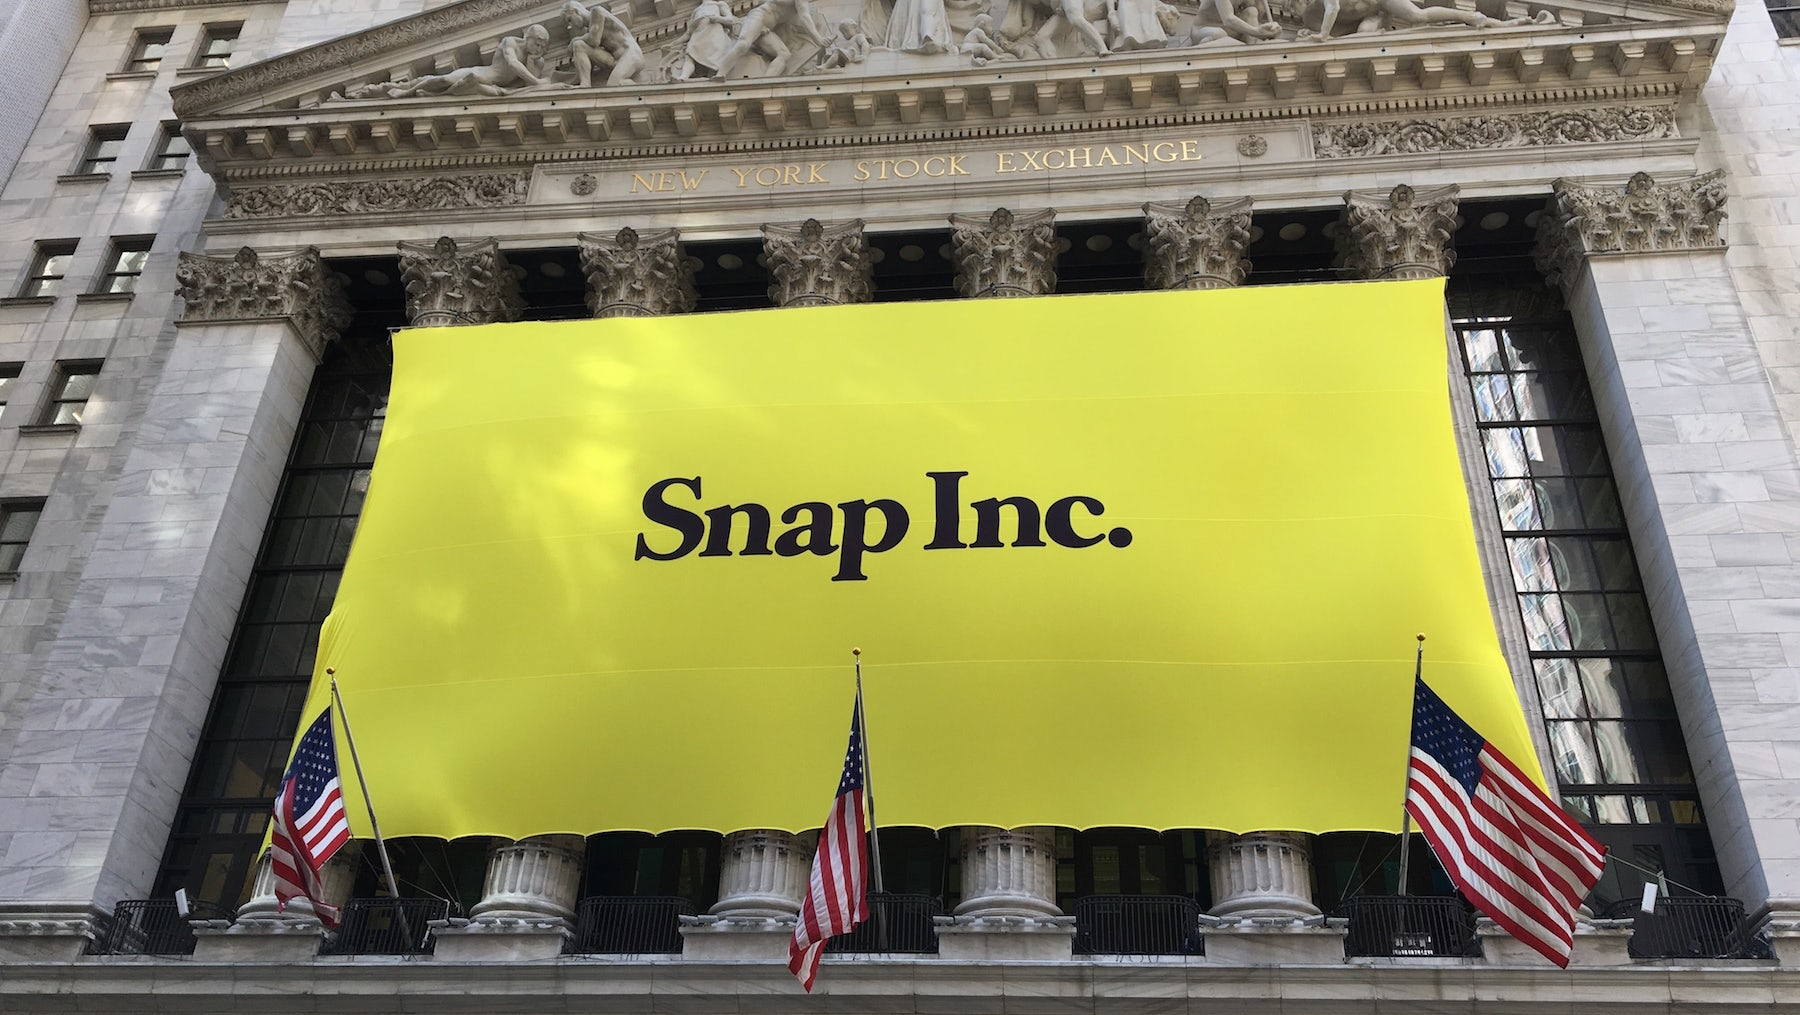 Snapchat makes its debut on the New York Stock Exchange   Source: Shutterstock